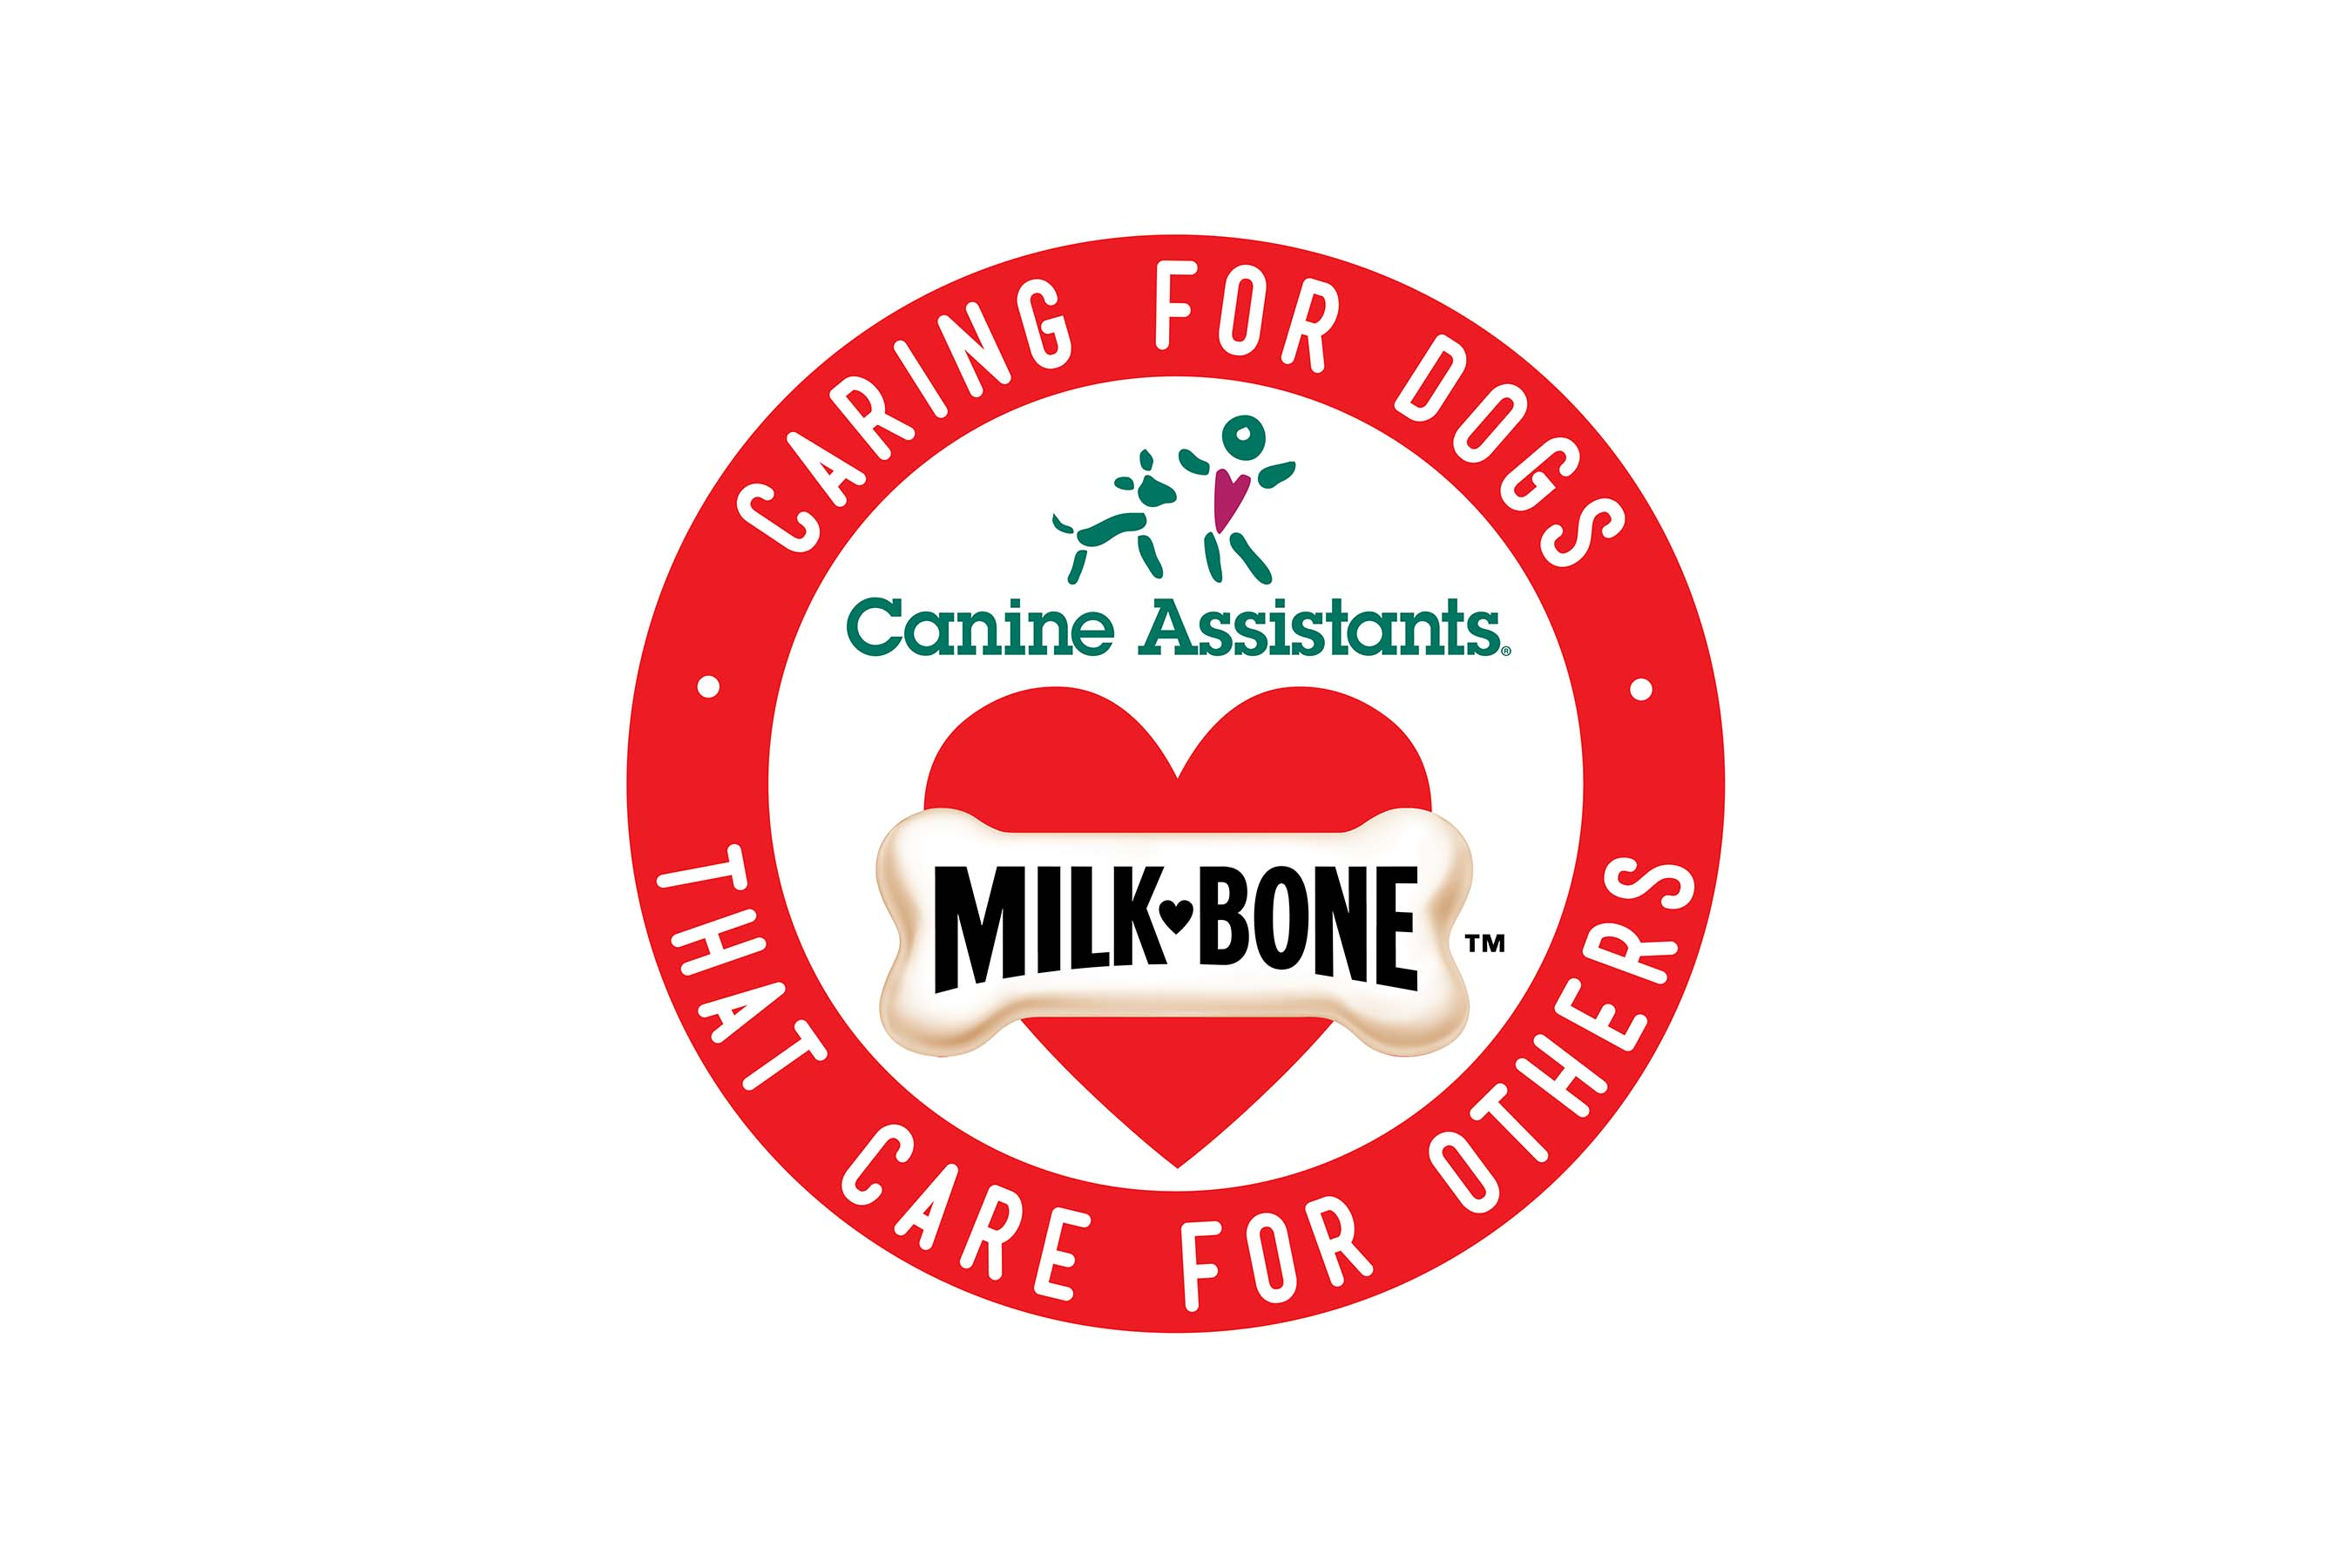 Canine Assistants and Milk-Bone Combined Logo